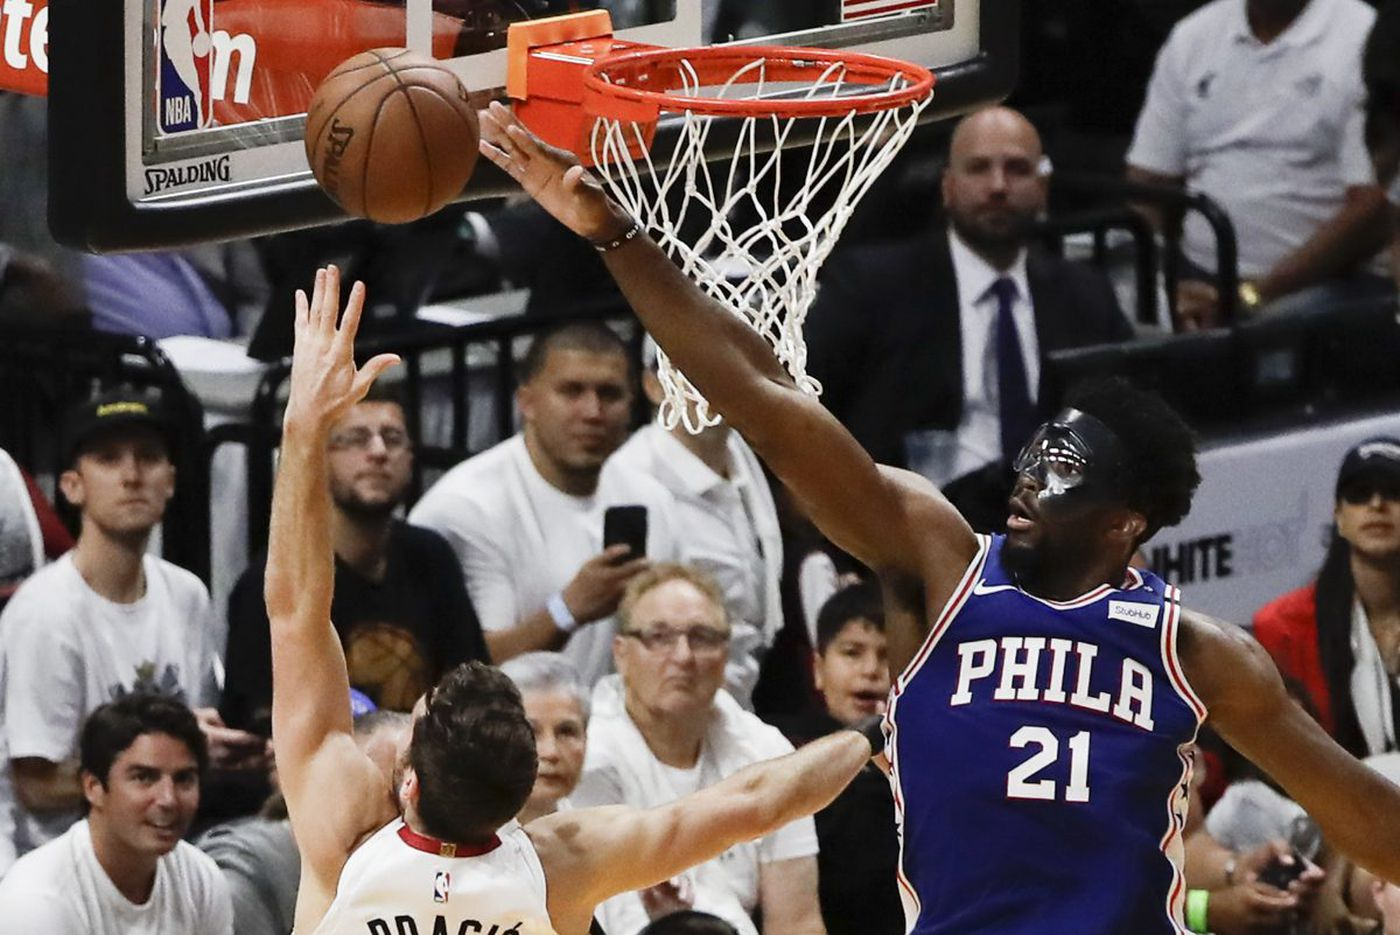 Sixers, returning home for Game 5, look to close out series vs. Heat